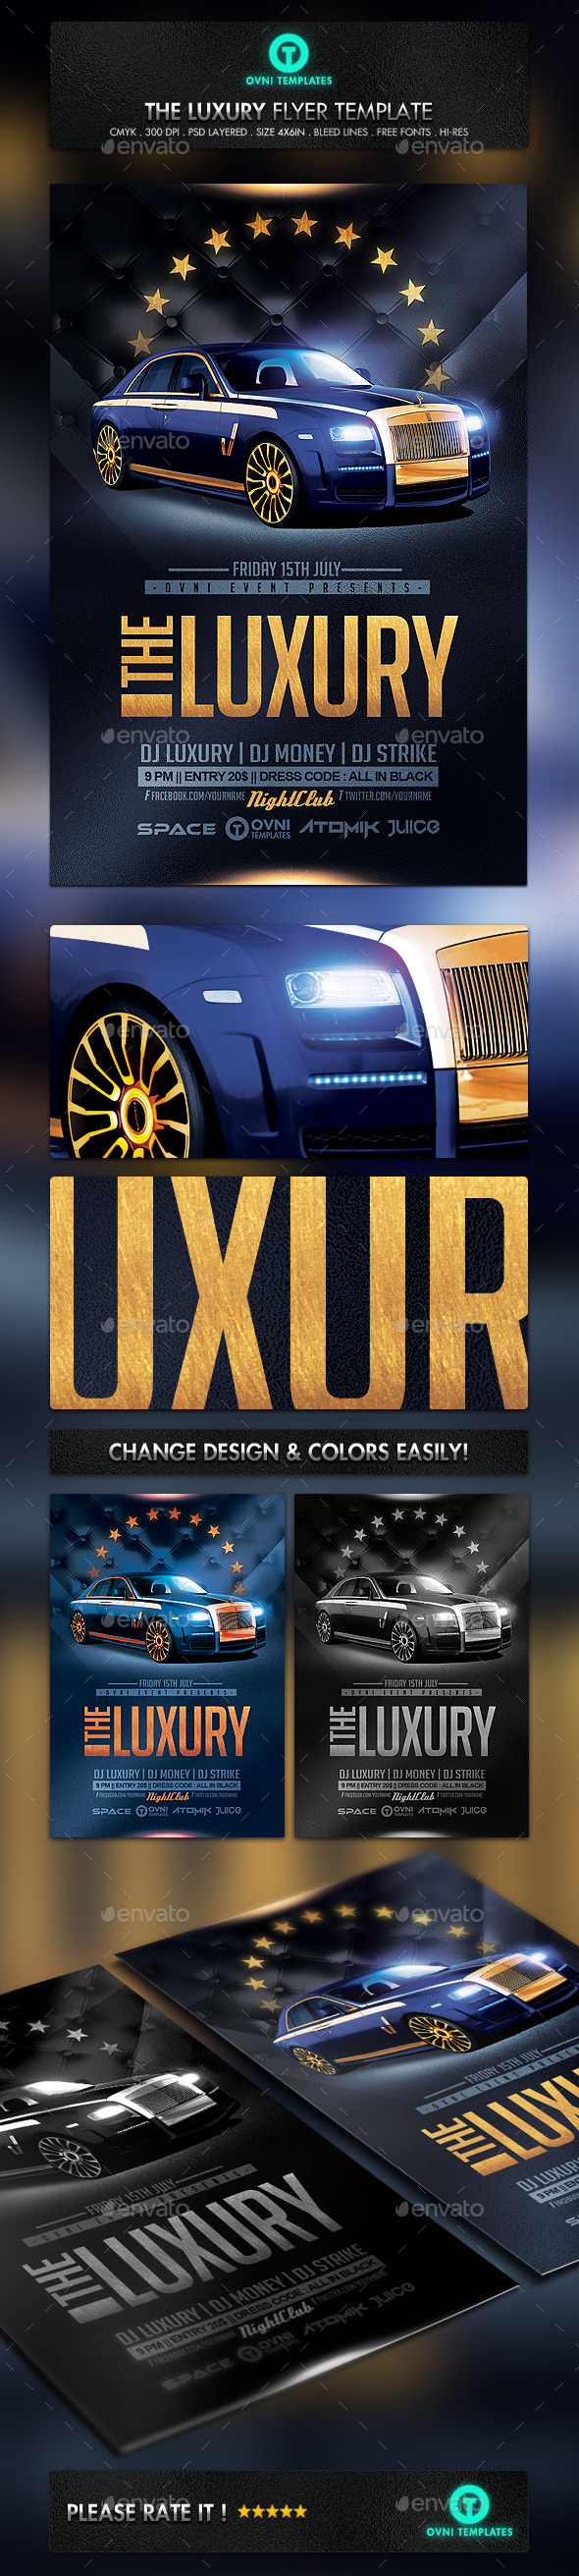 Luxury Car Gold Flyer Template Flyers Print Templates